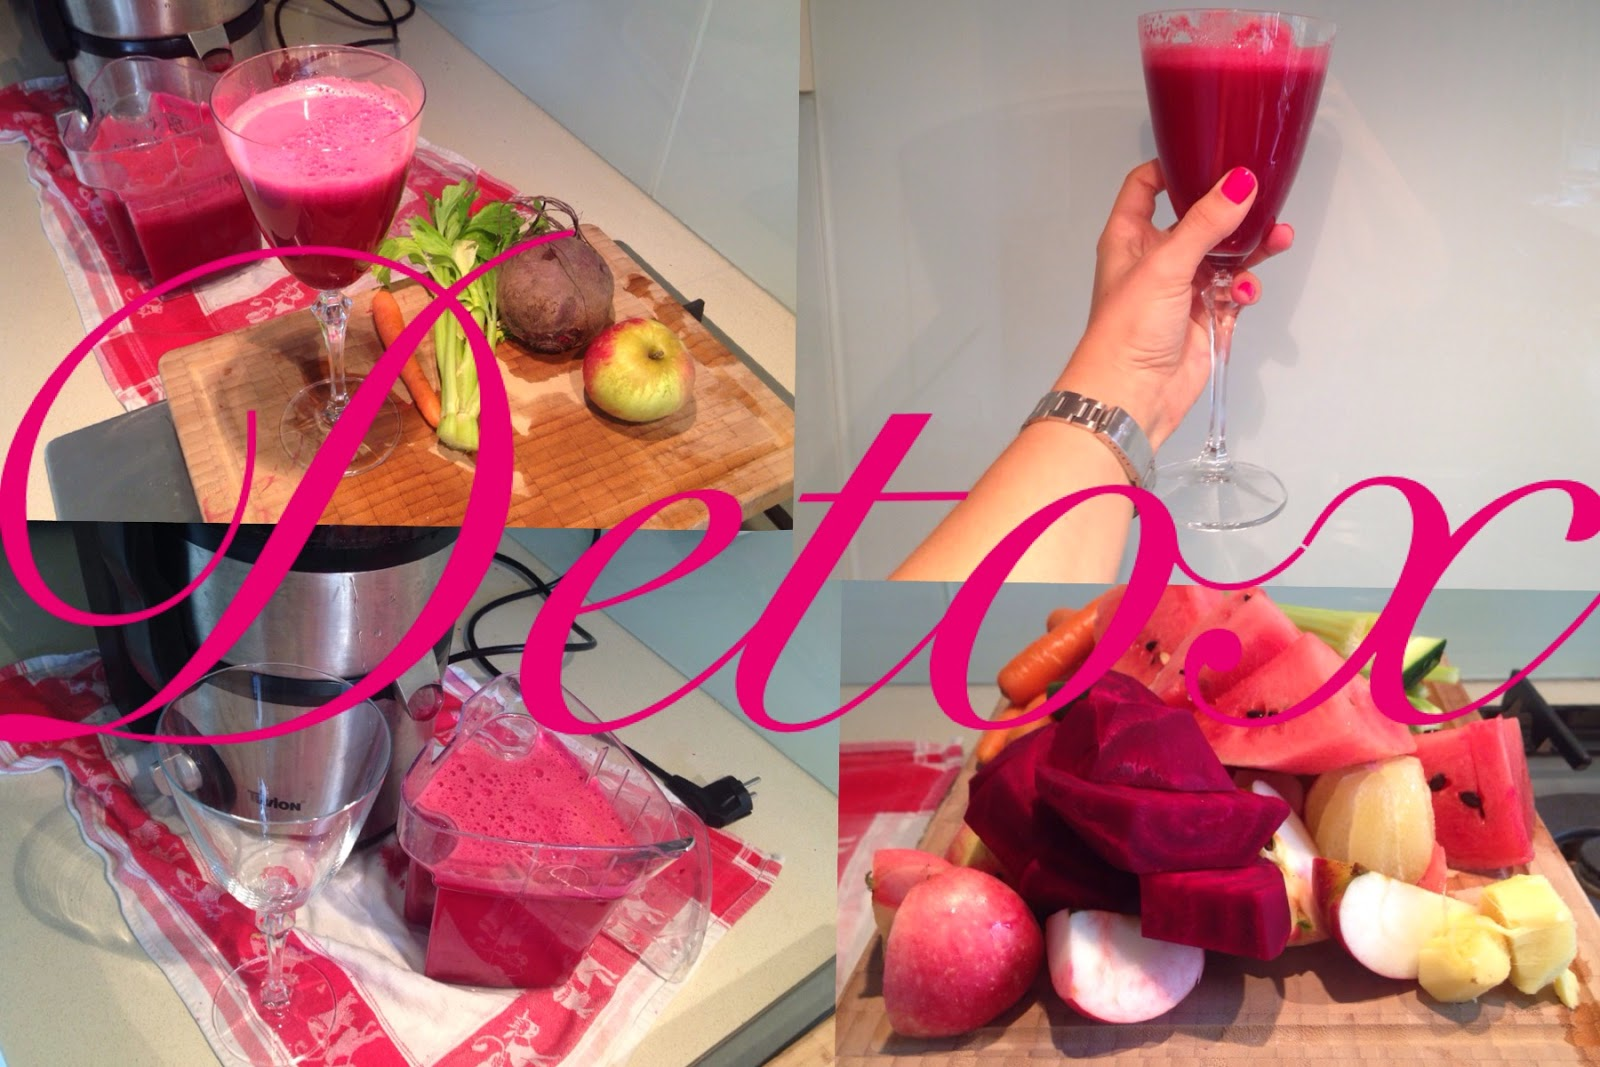 Time for a Detox Juice!